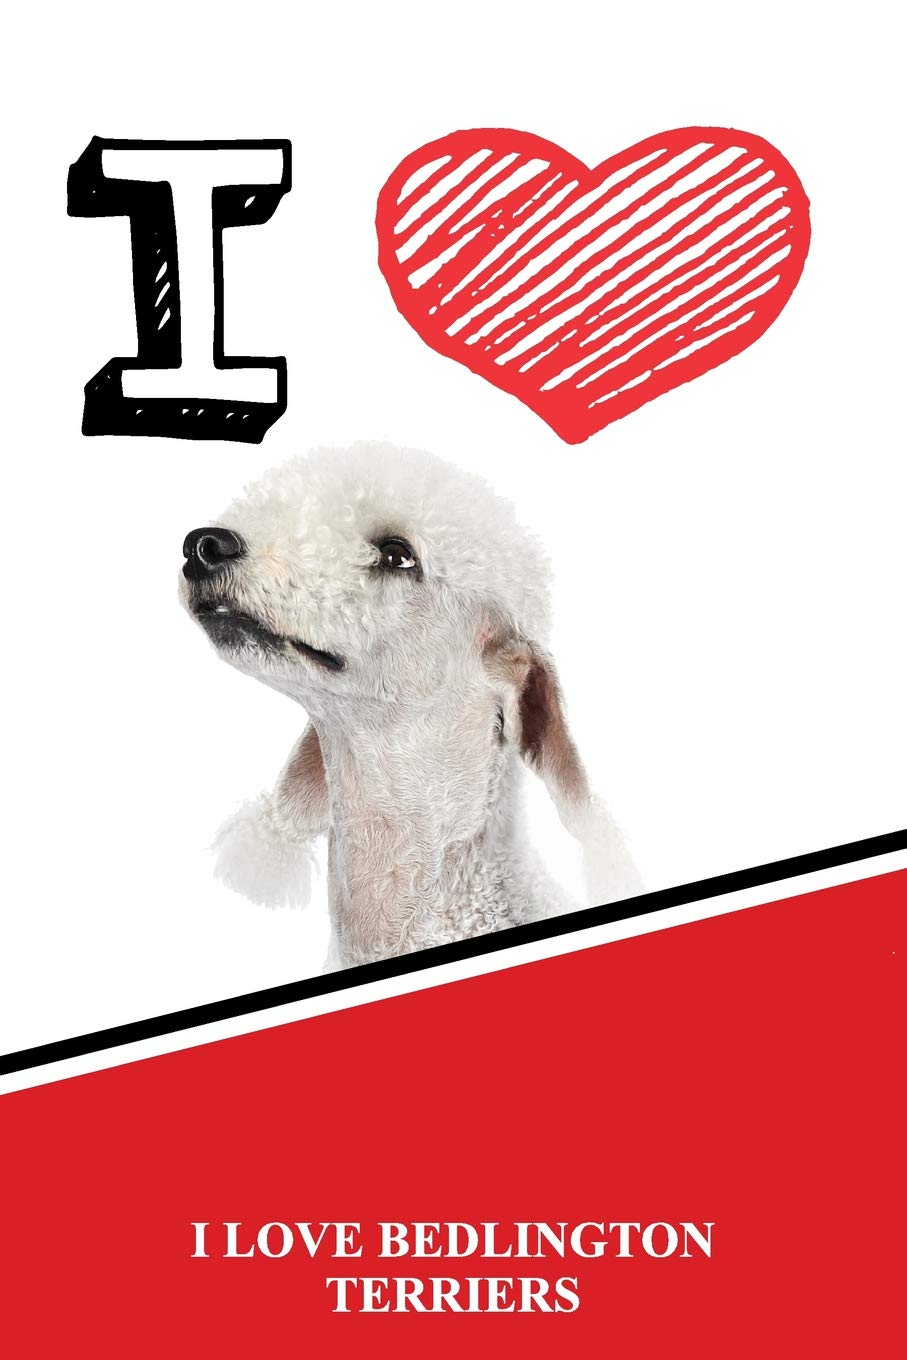 I Love Bedlington Terriers: Jiu-Jitsu Training Diary Training journal log feature 120 pages 6″x9″